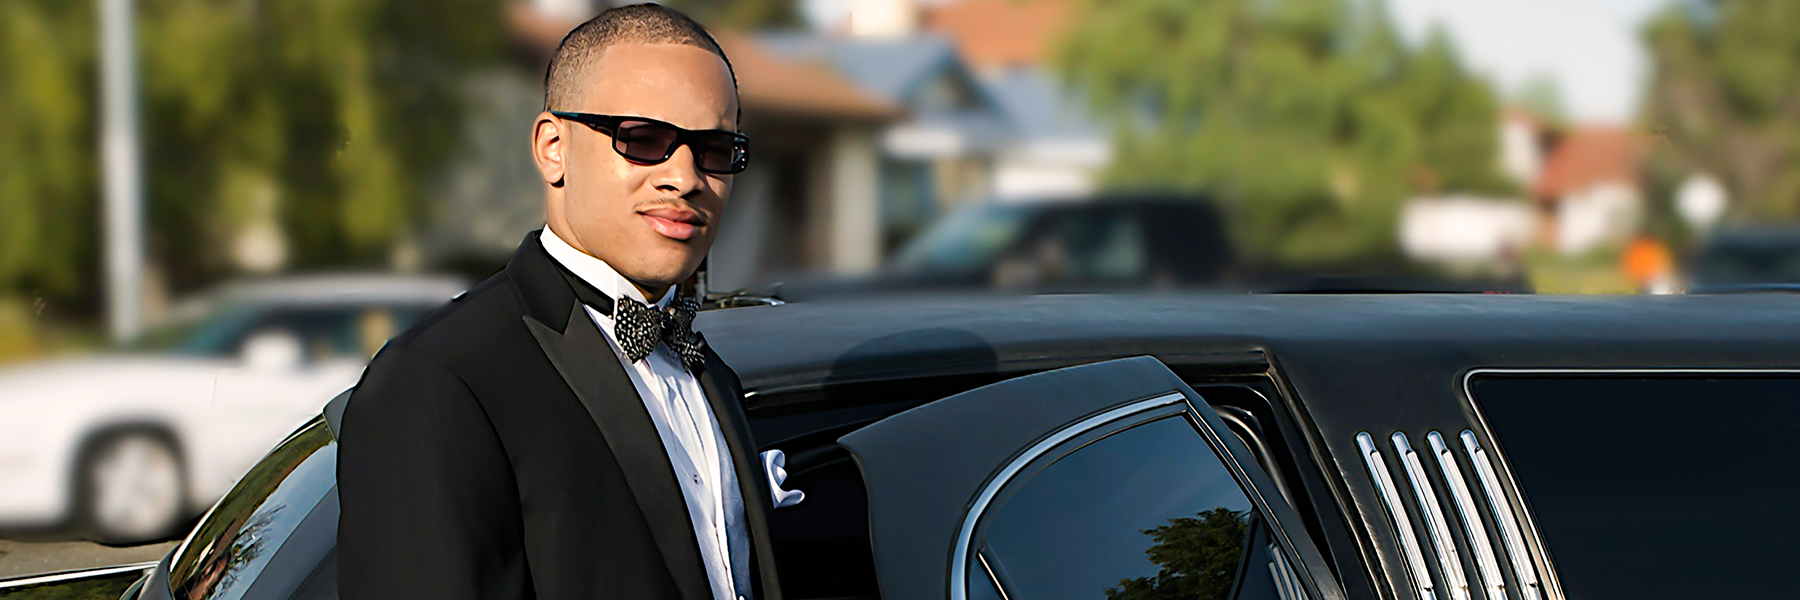 Limo Prom Prom Limo Services Myrtle Beach Limos For Prom Charleston Limos